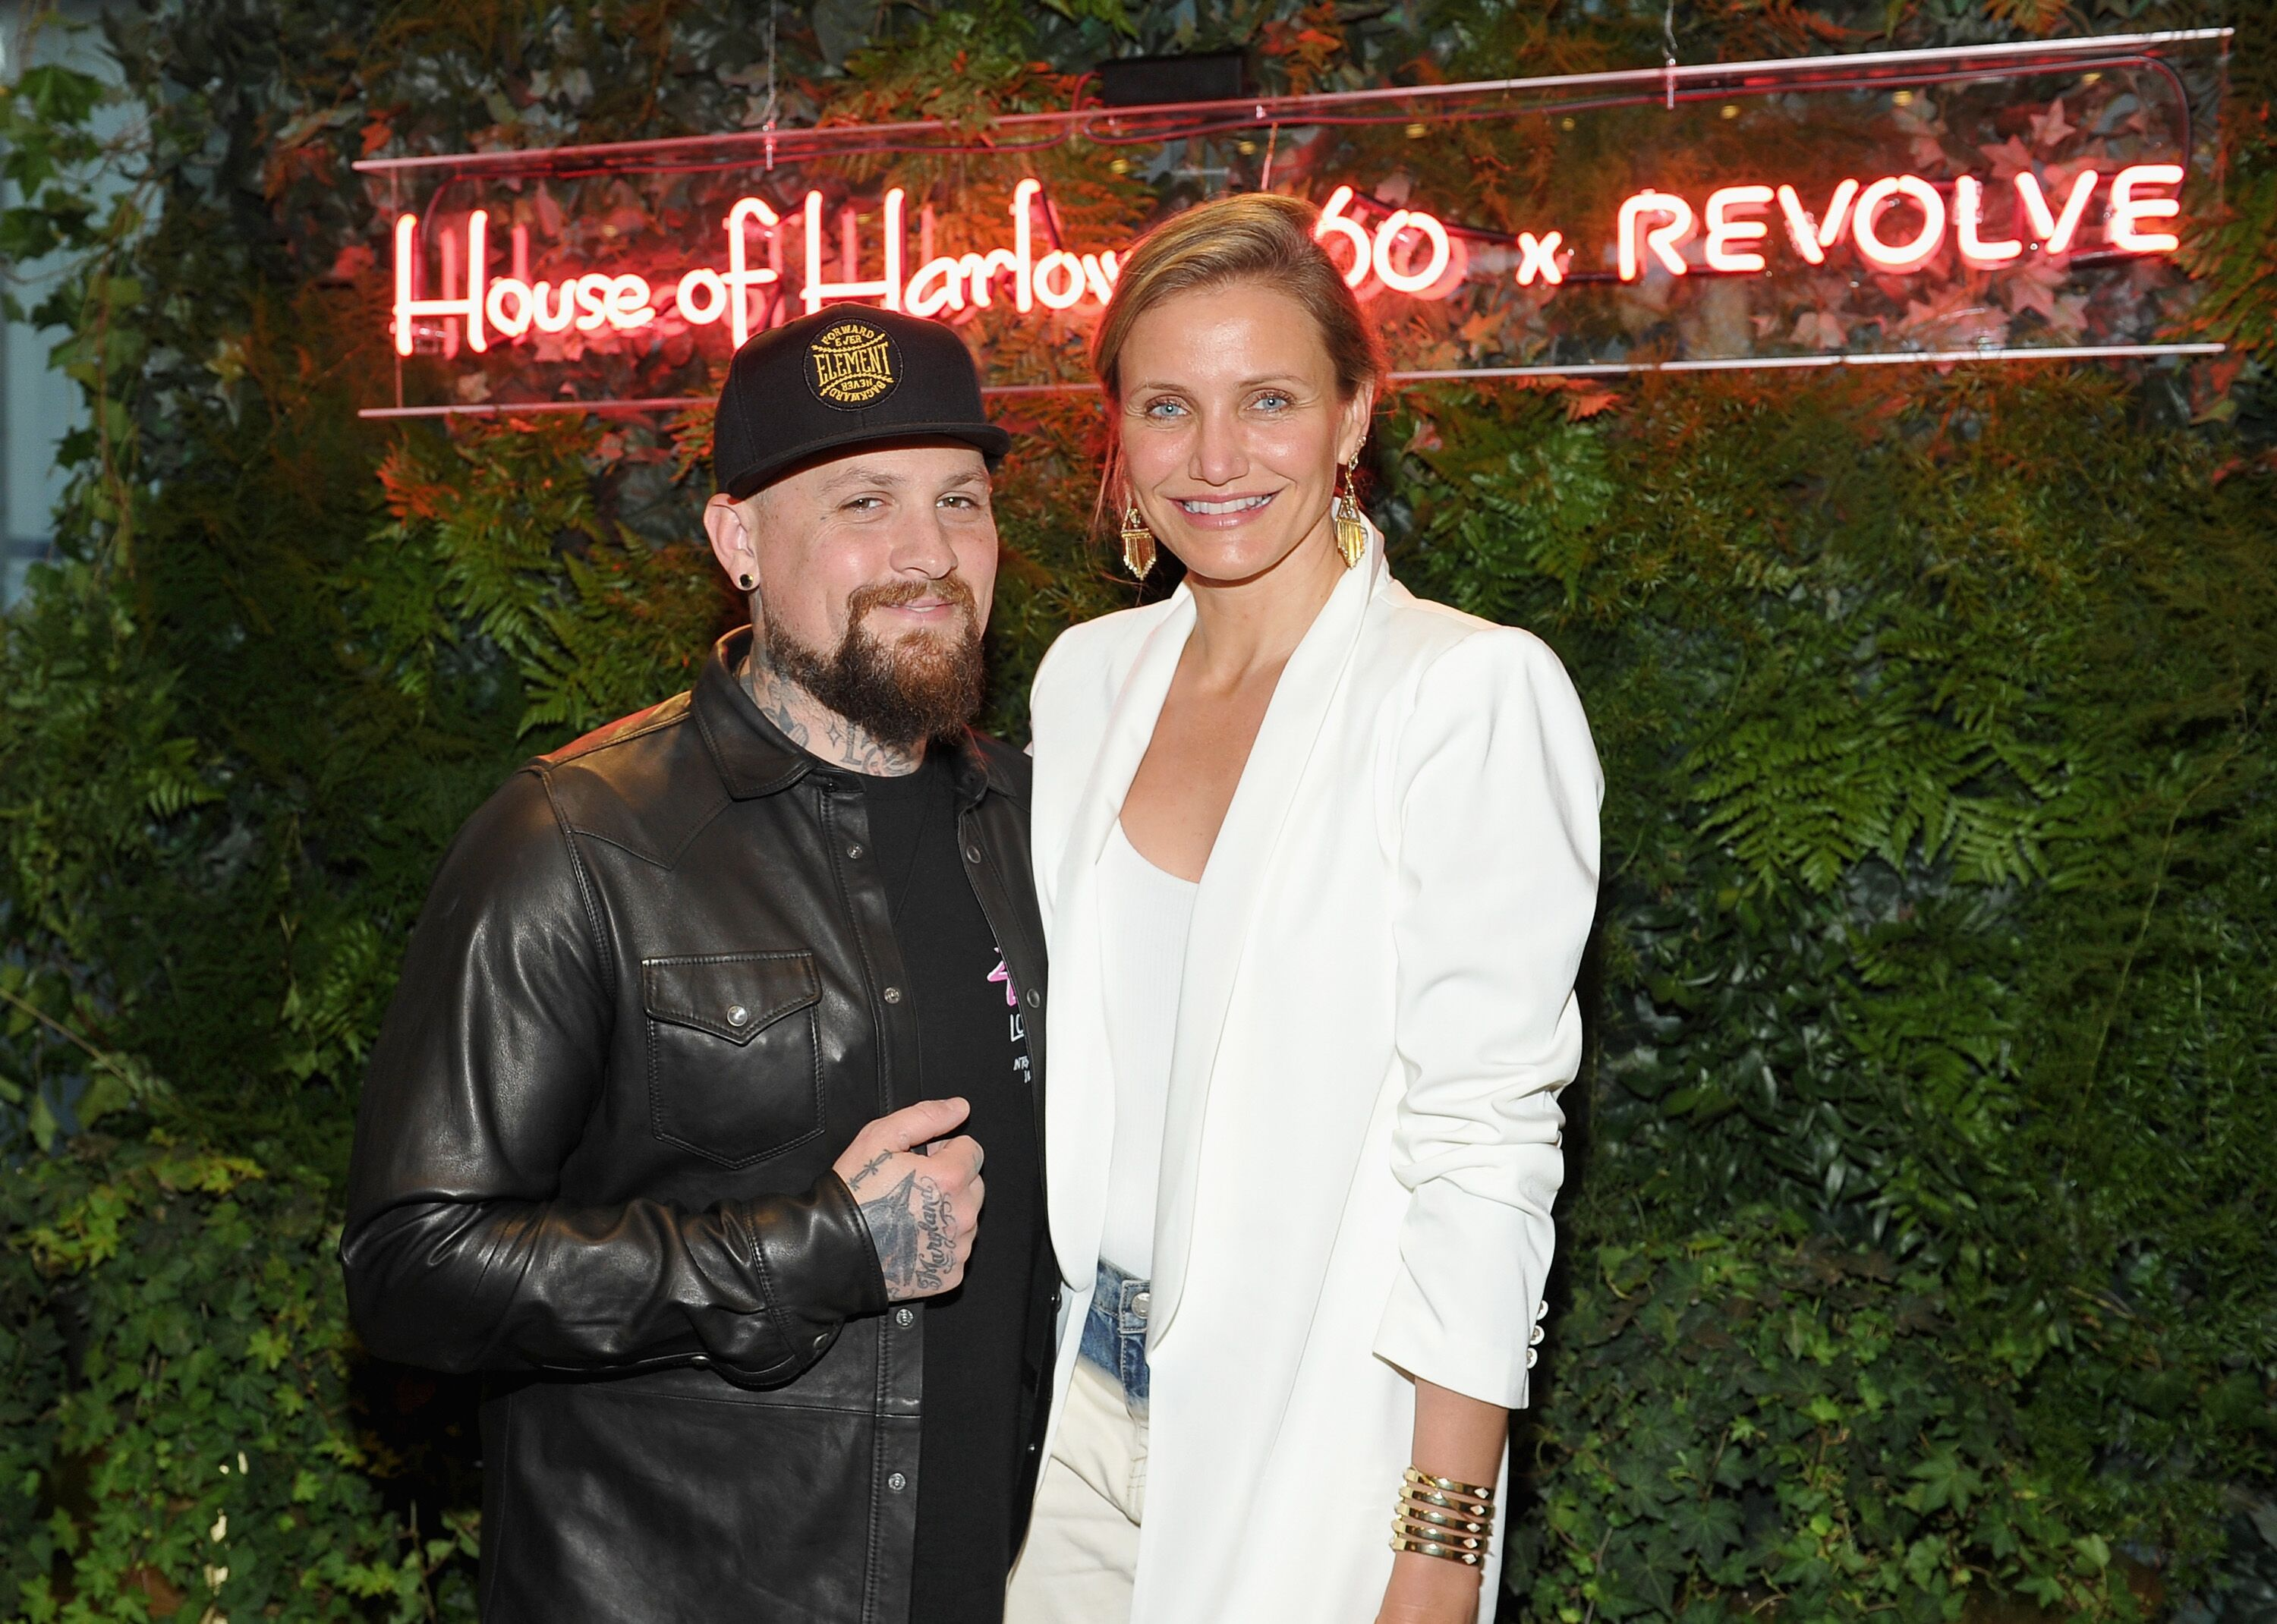 Guitarist Benji Madden and actress Cameron Diaz attend House of Harlow 1960 x REVOLVE on June 2, 2016 in Los Angeles | Source: Getty Images